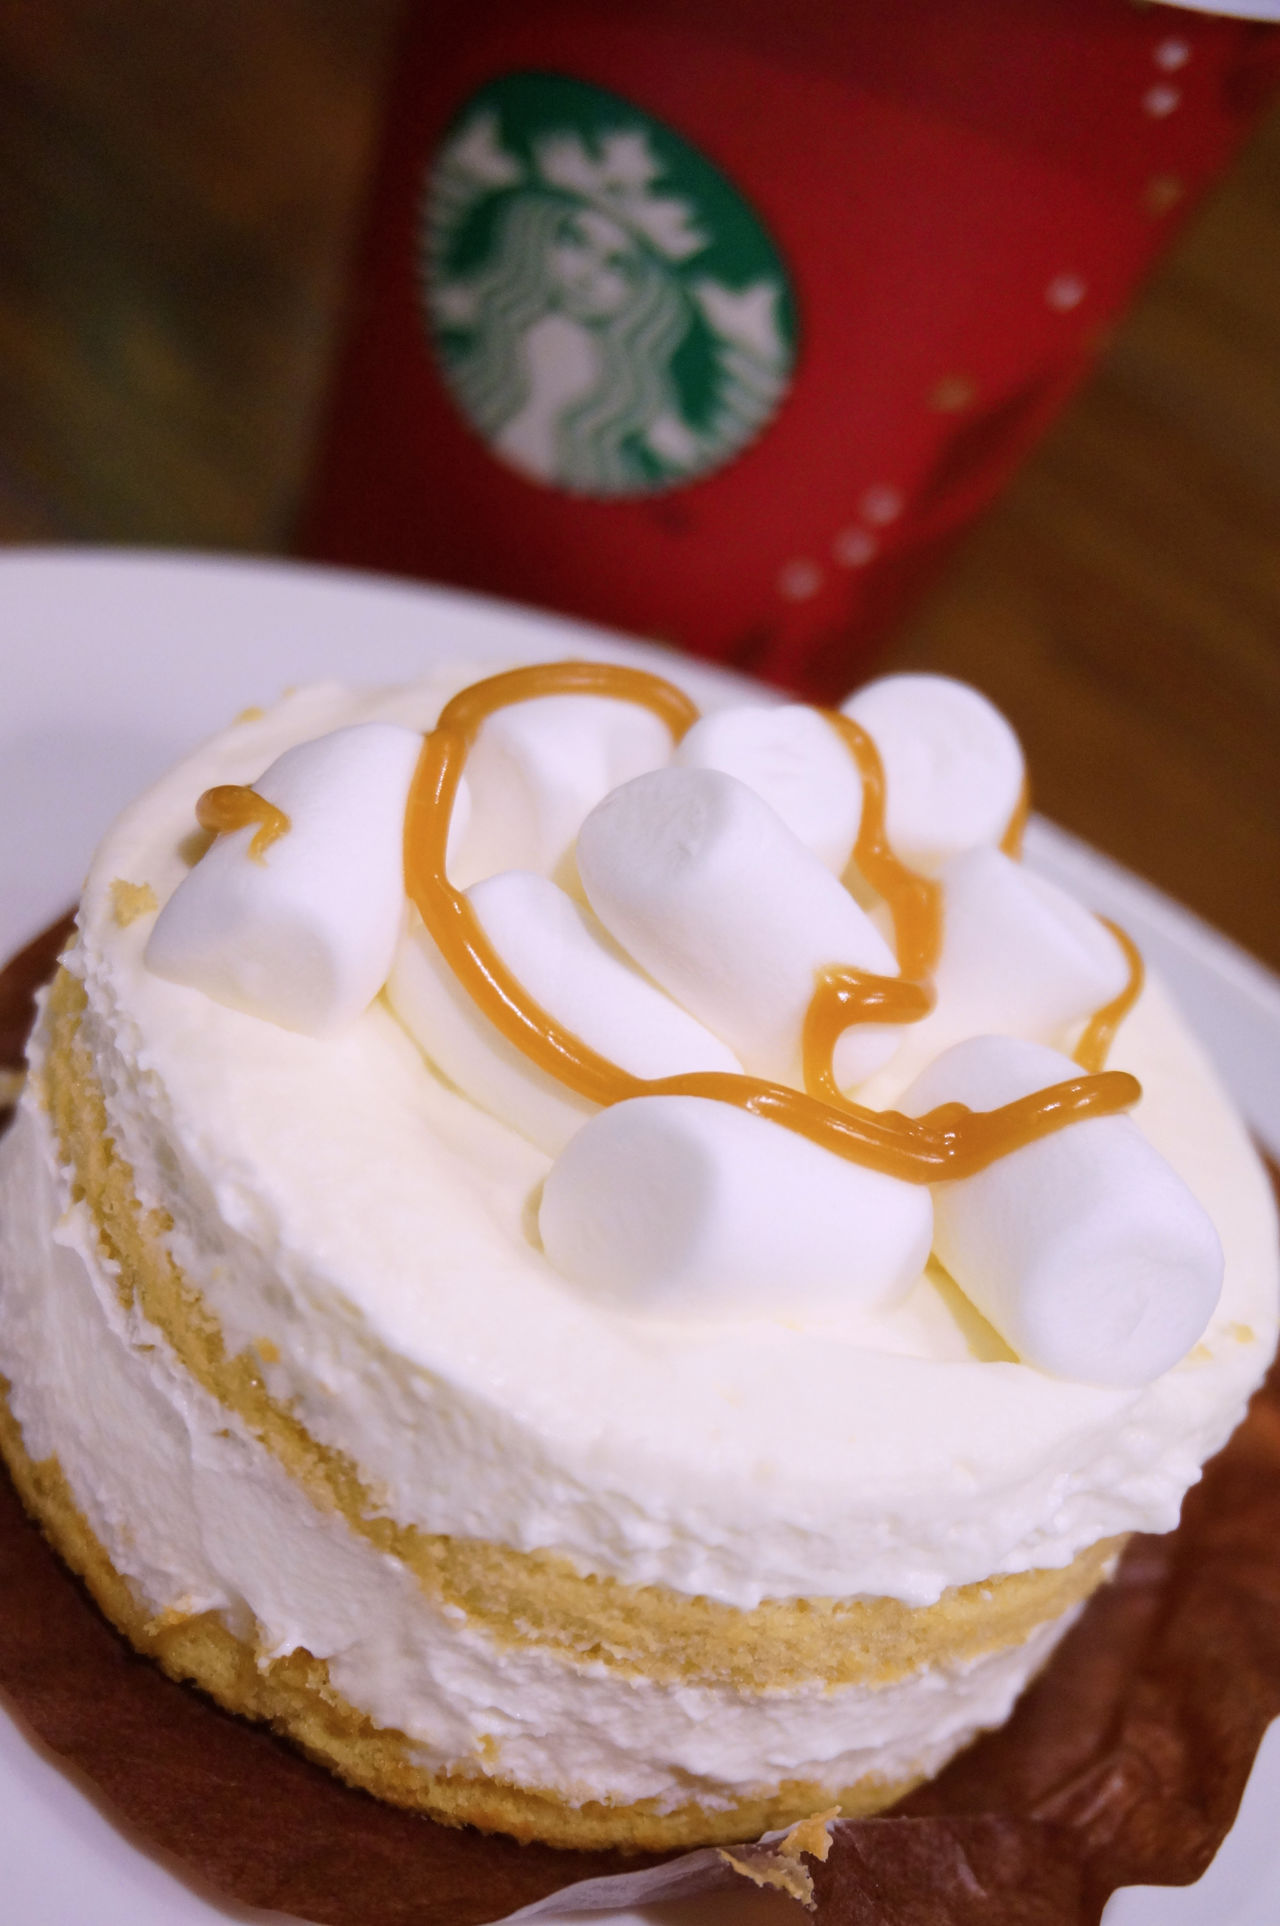 2013 Cake Cream Desserts Marshmallow Starbucks Starbucks Coffee Sweet クリーム ケーキ スターバックス マシュマロ